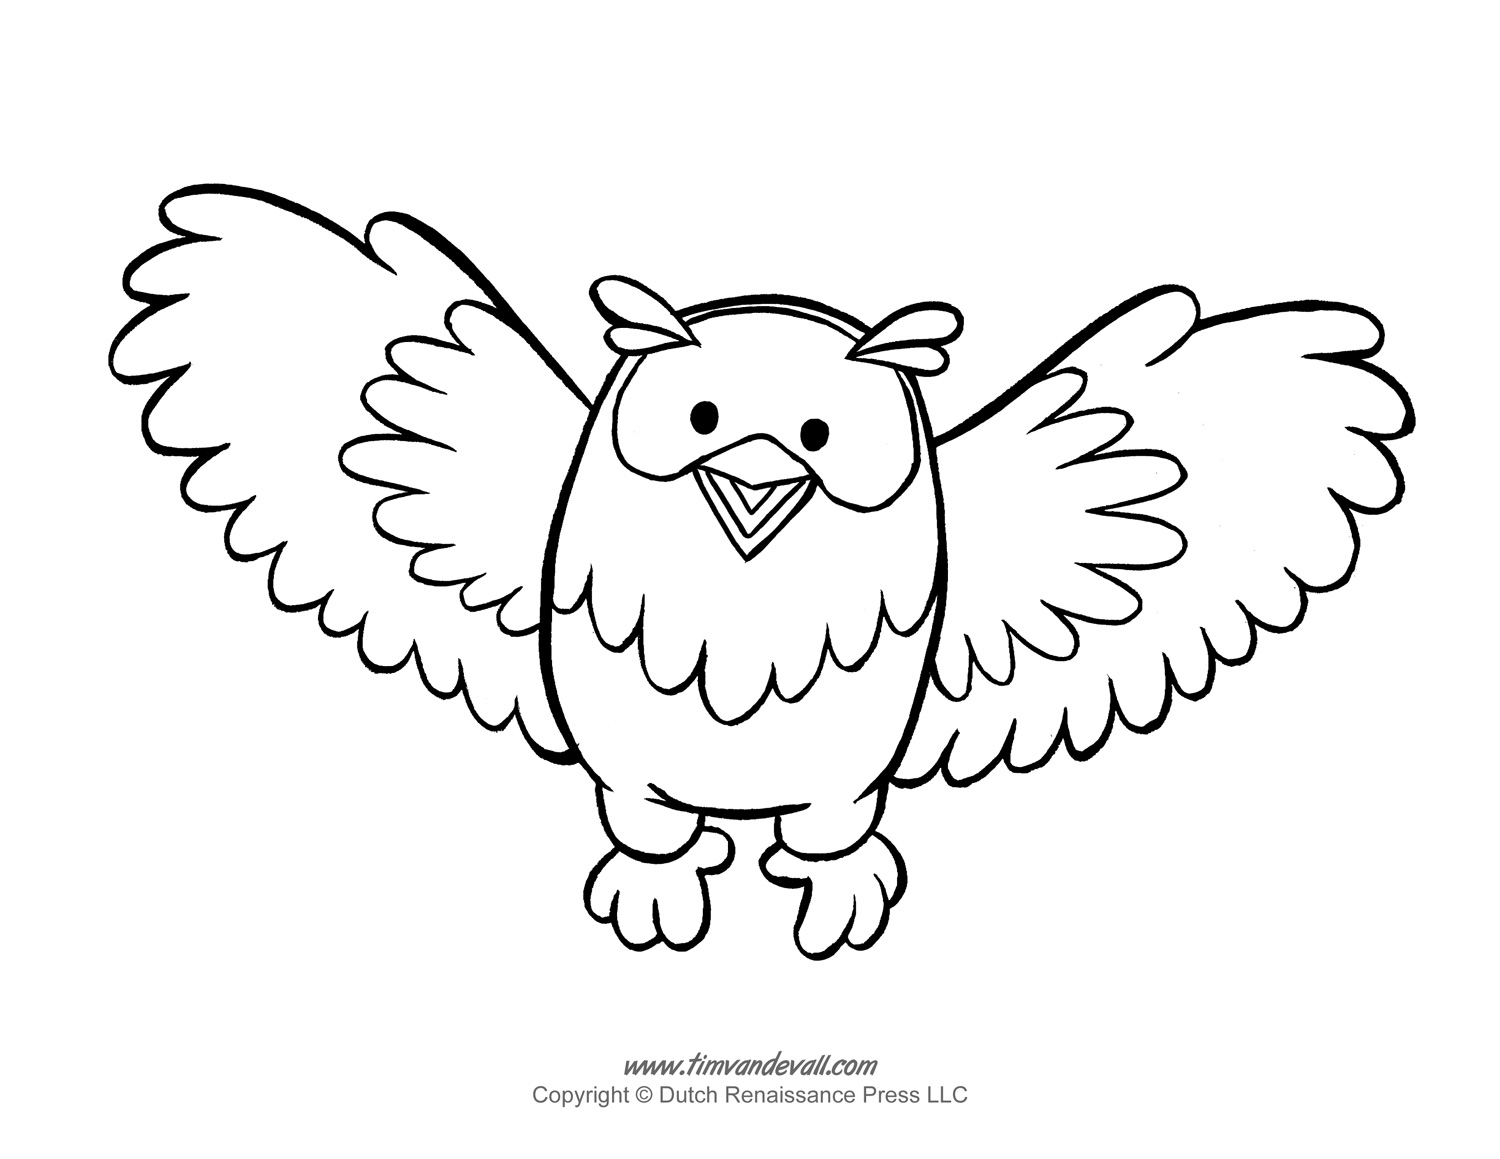 printable owl template - Printable Owl Pictures